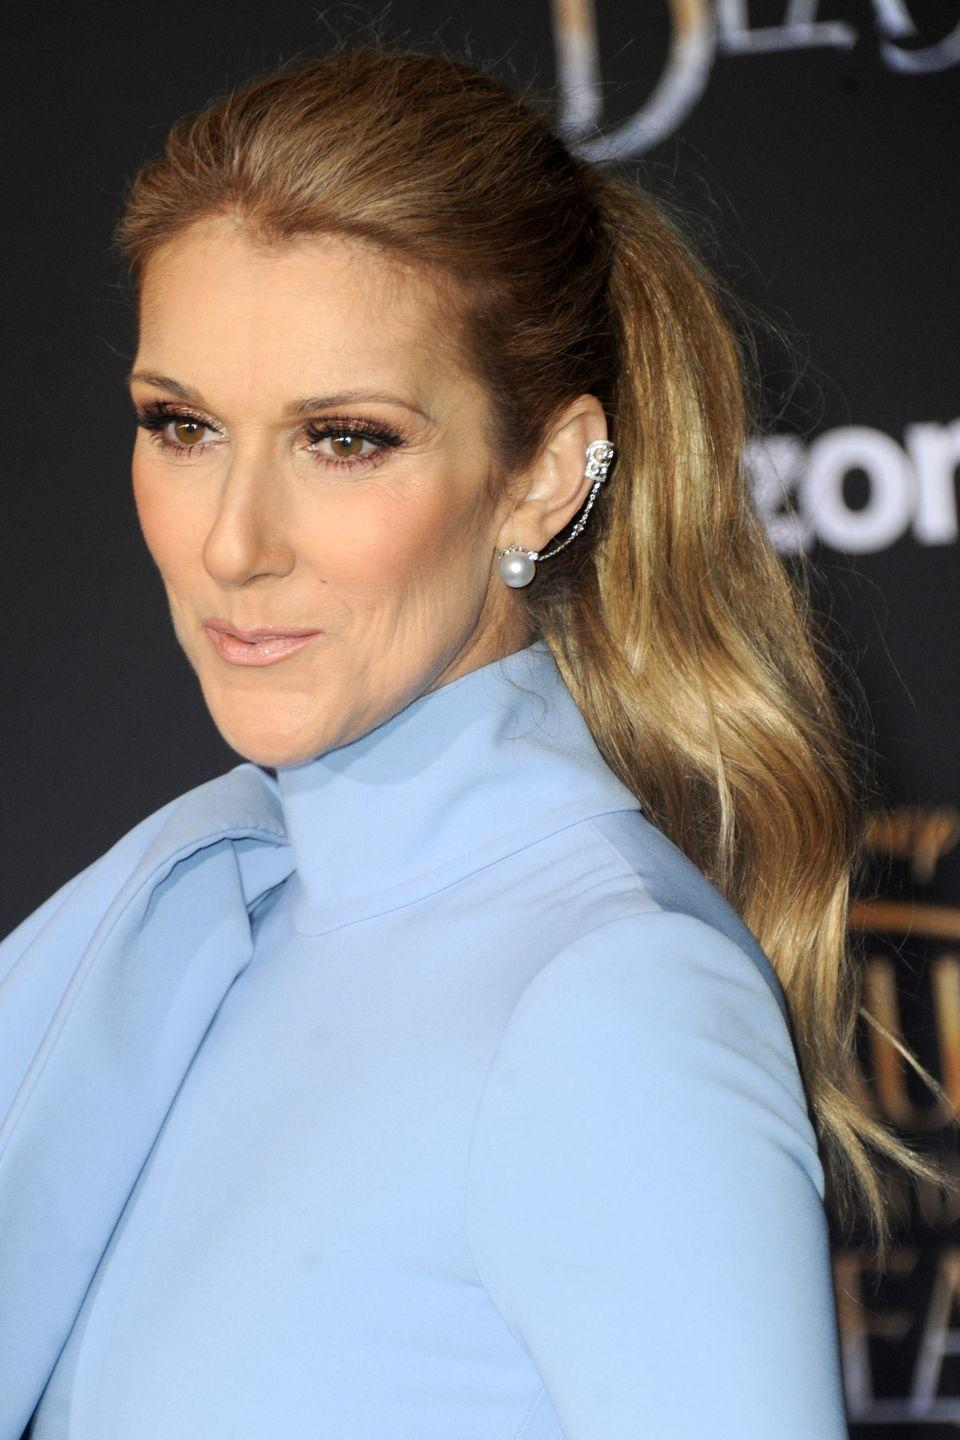 """<p><a href=""""http://www.goodhousekeeping.com/health/diet-nutrition/a44676/what-celine-dion-eats-in-a-day/"""" rel=""""nofollow noopener"""" target=""""_blank"""" data-ylk=""""slk:Celine Dion"""" class=""""link rapid-noclick-resp"""">Celine Dion</a> has favored golden highlights — perhaps to match her golden voice? — for over 20 years.</p>"""